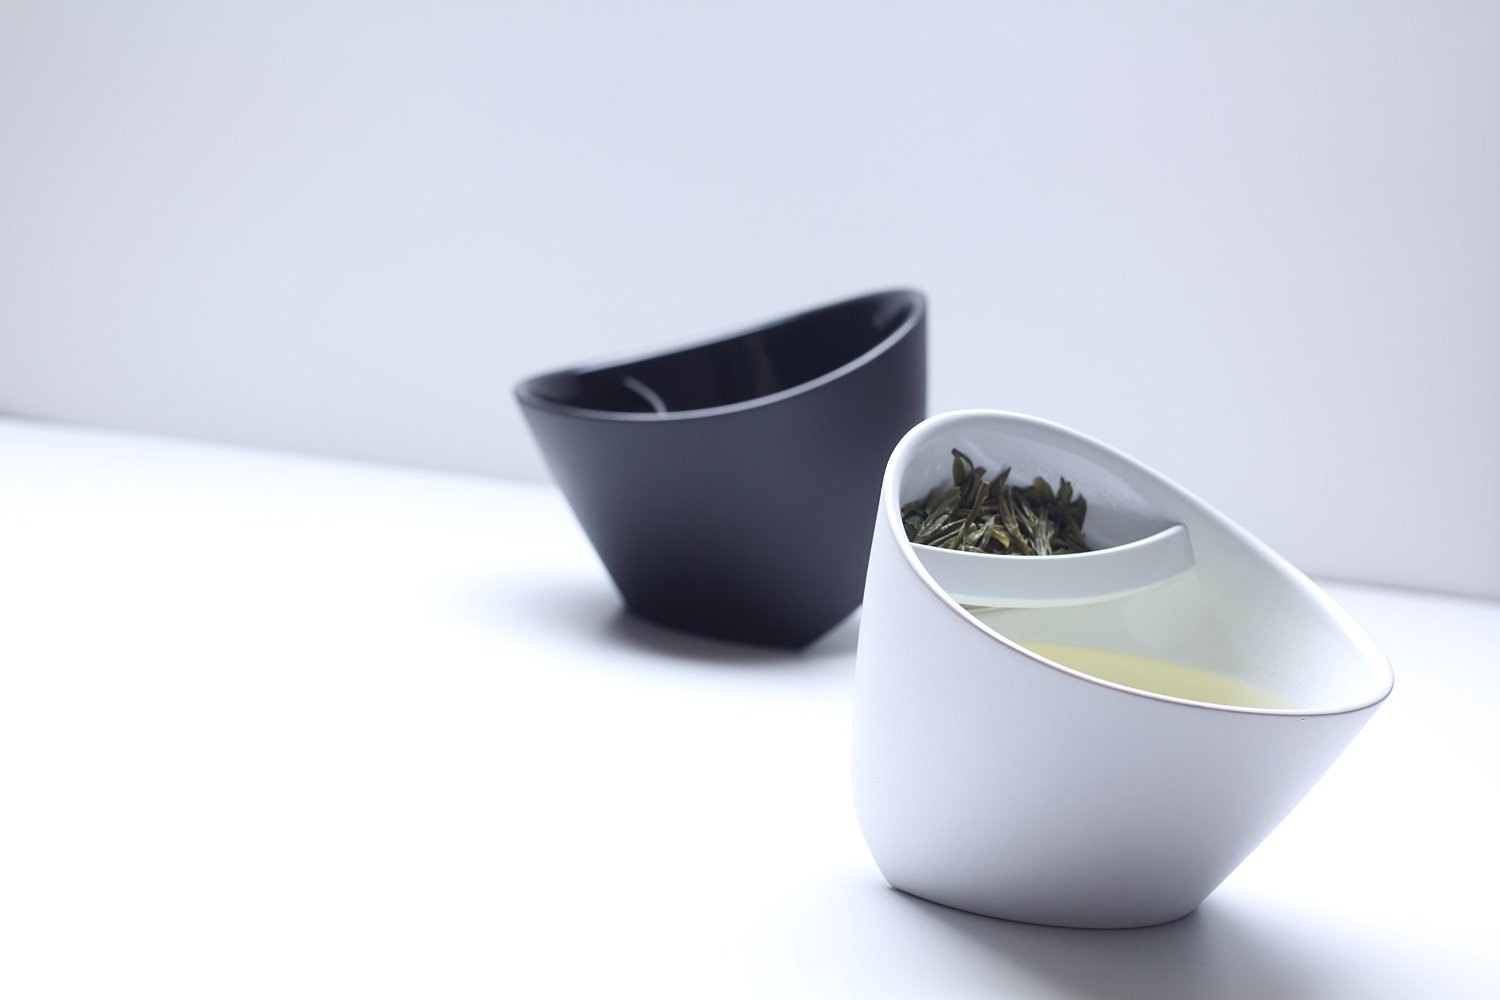 Magisso Tea Cup - Ingenious tipping tea cup for loose leaf tea